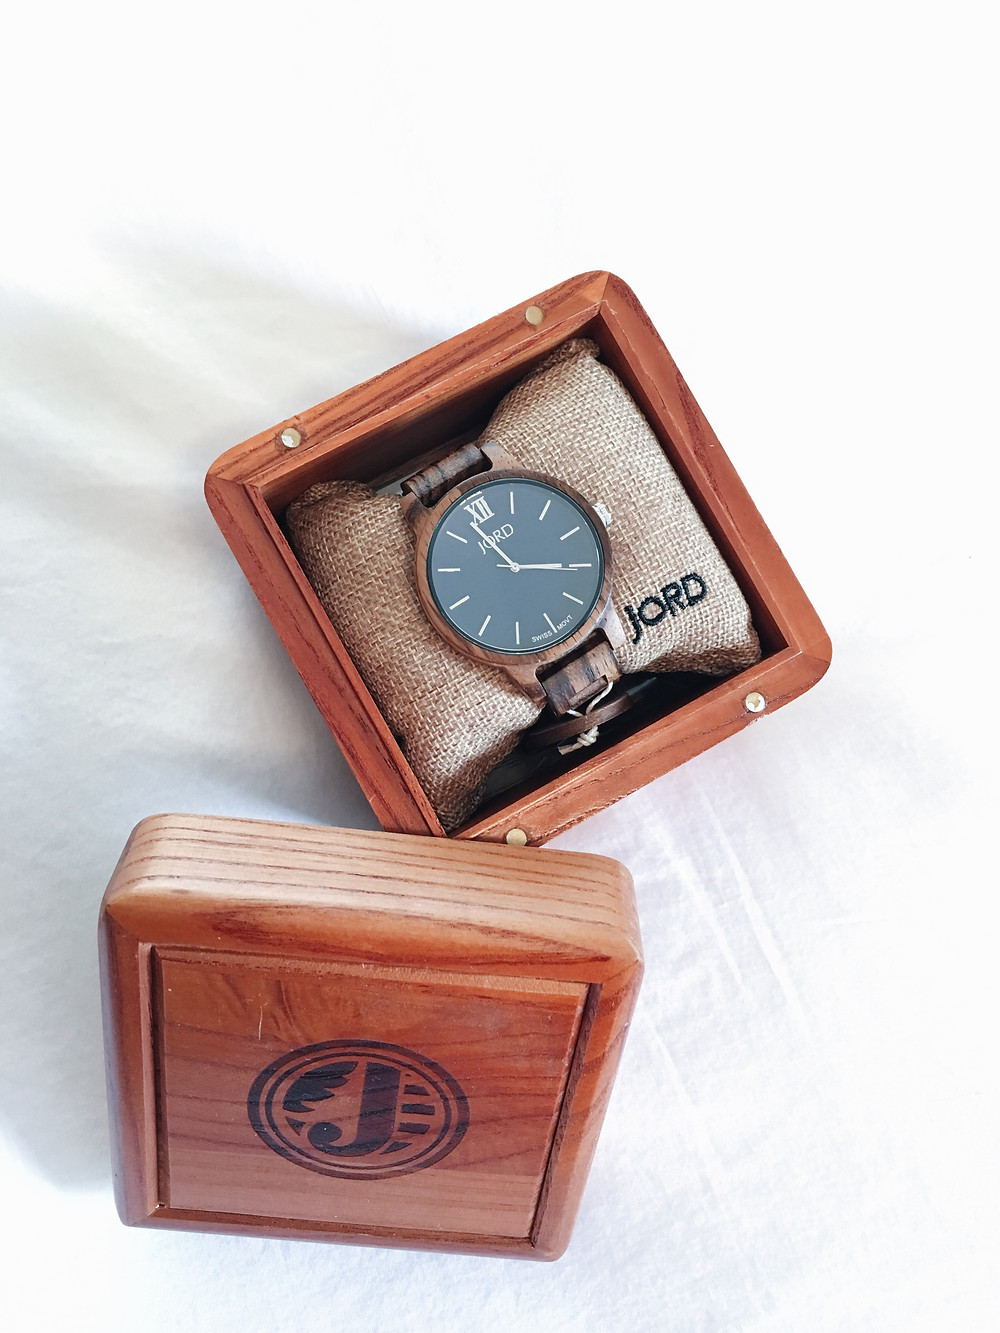 JORD Wood Watch in packaging